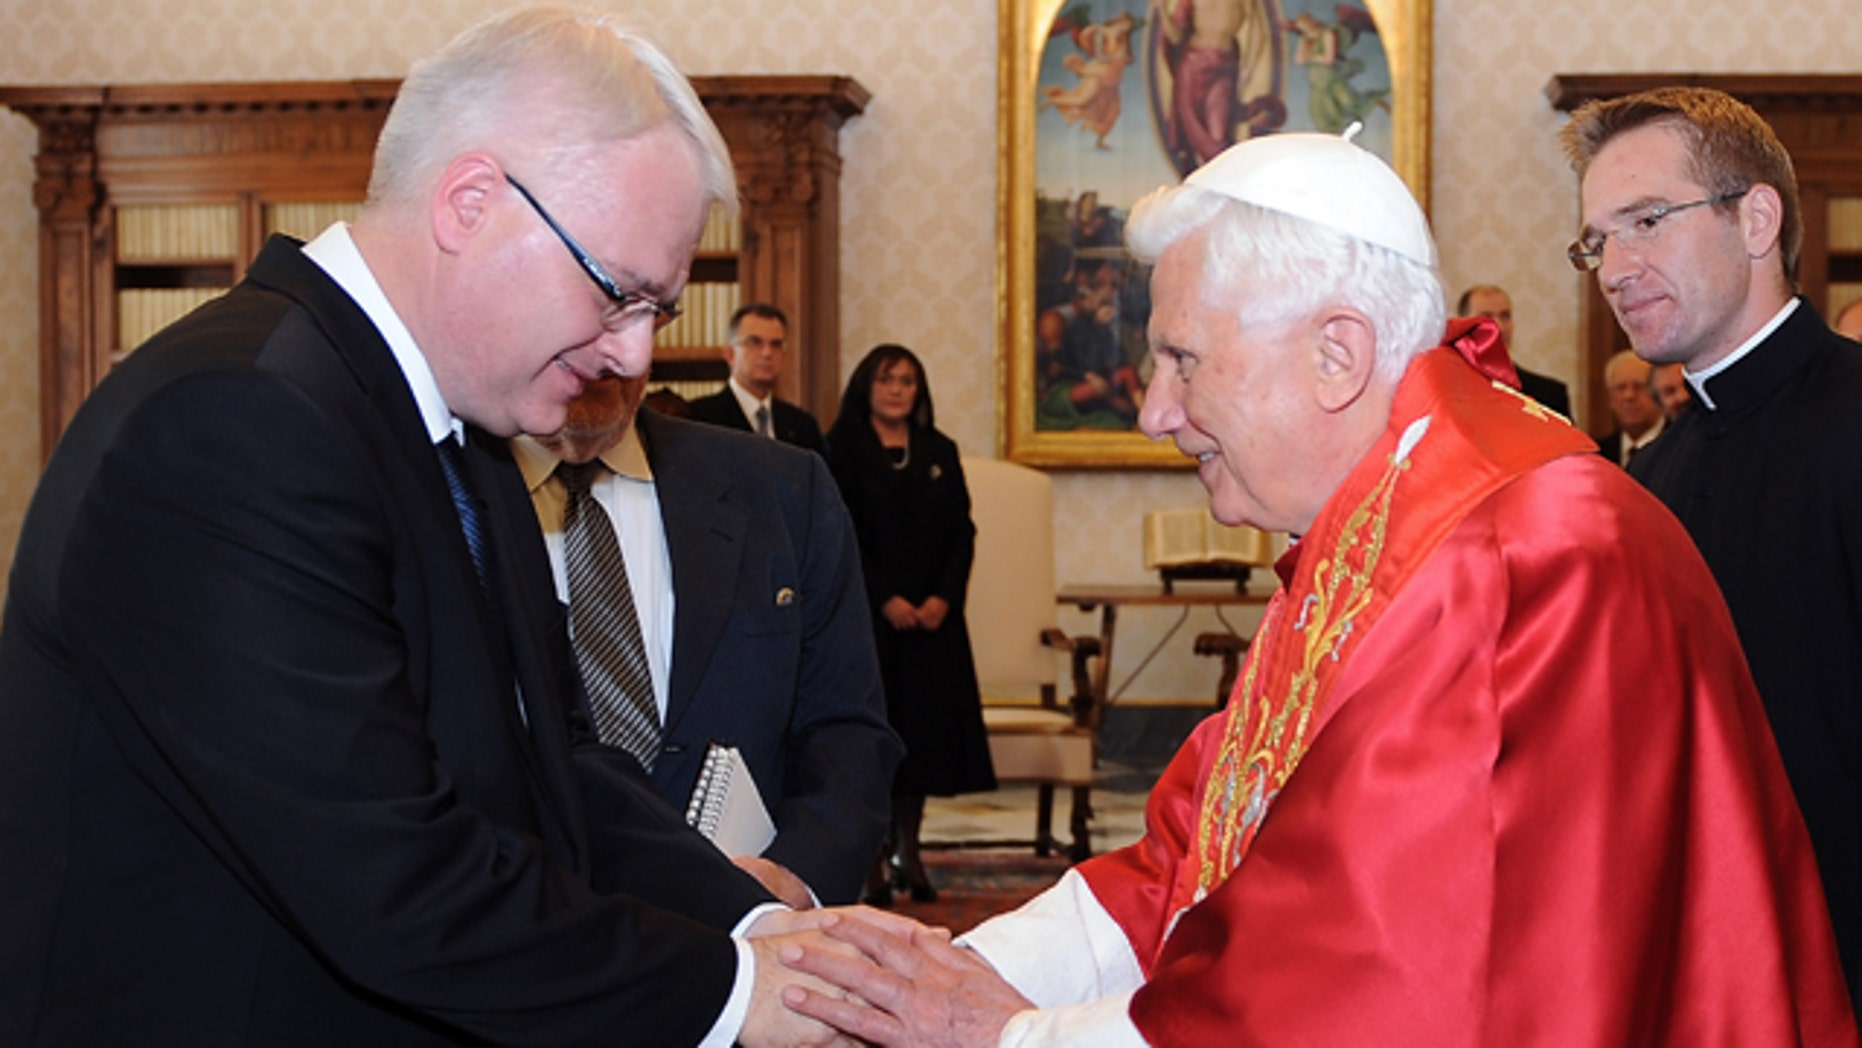 Oct. 9: Pope Benedict XVI, right, welcomes Croatian President Ivo Josipovic, on the occasion of their meeting at the Vatican.